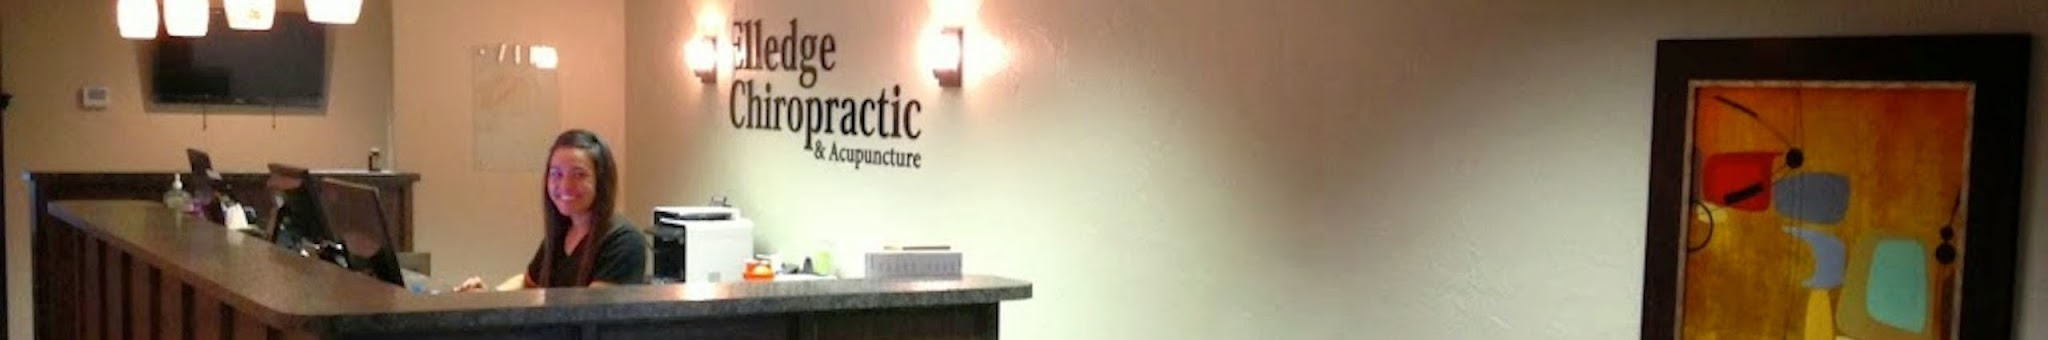 elledge chiropractic acupuncture youtube